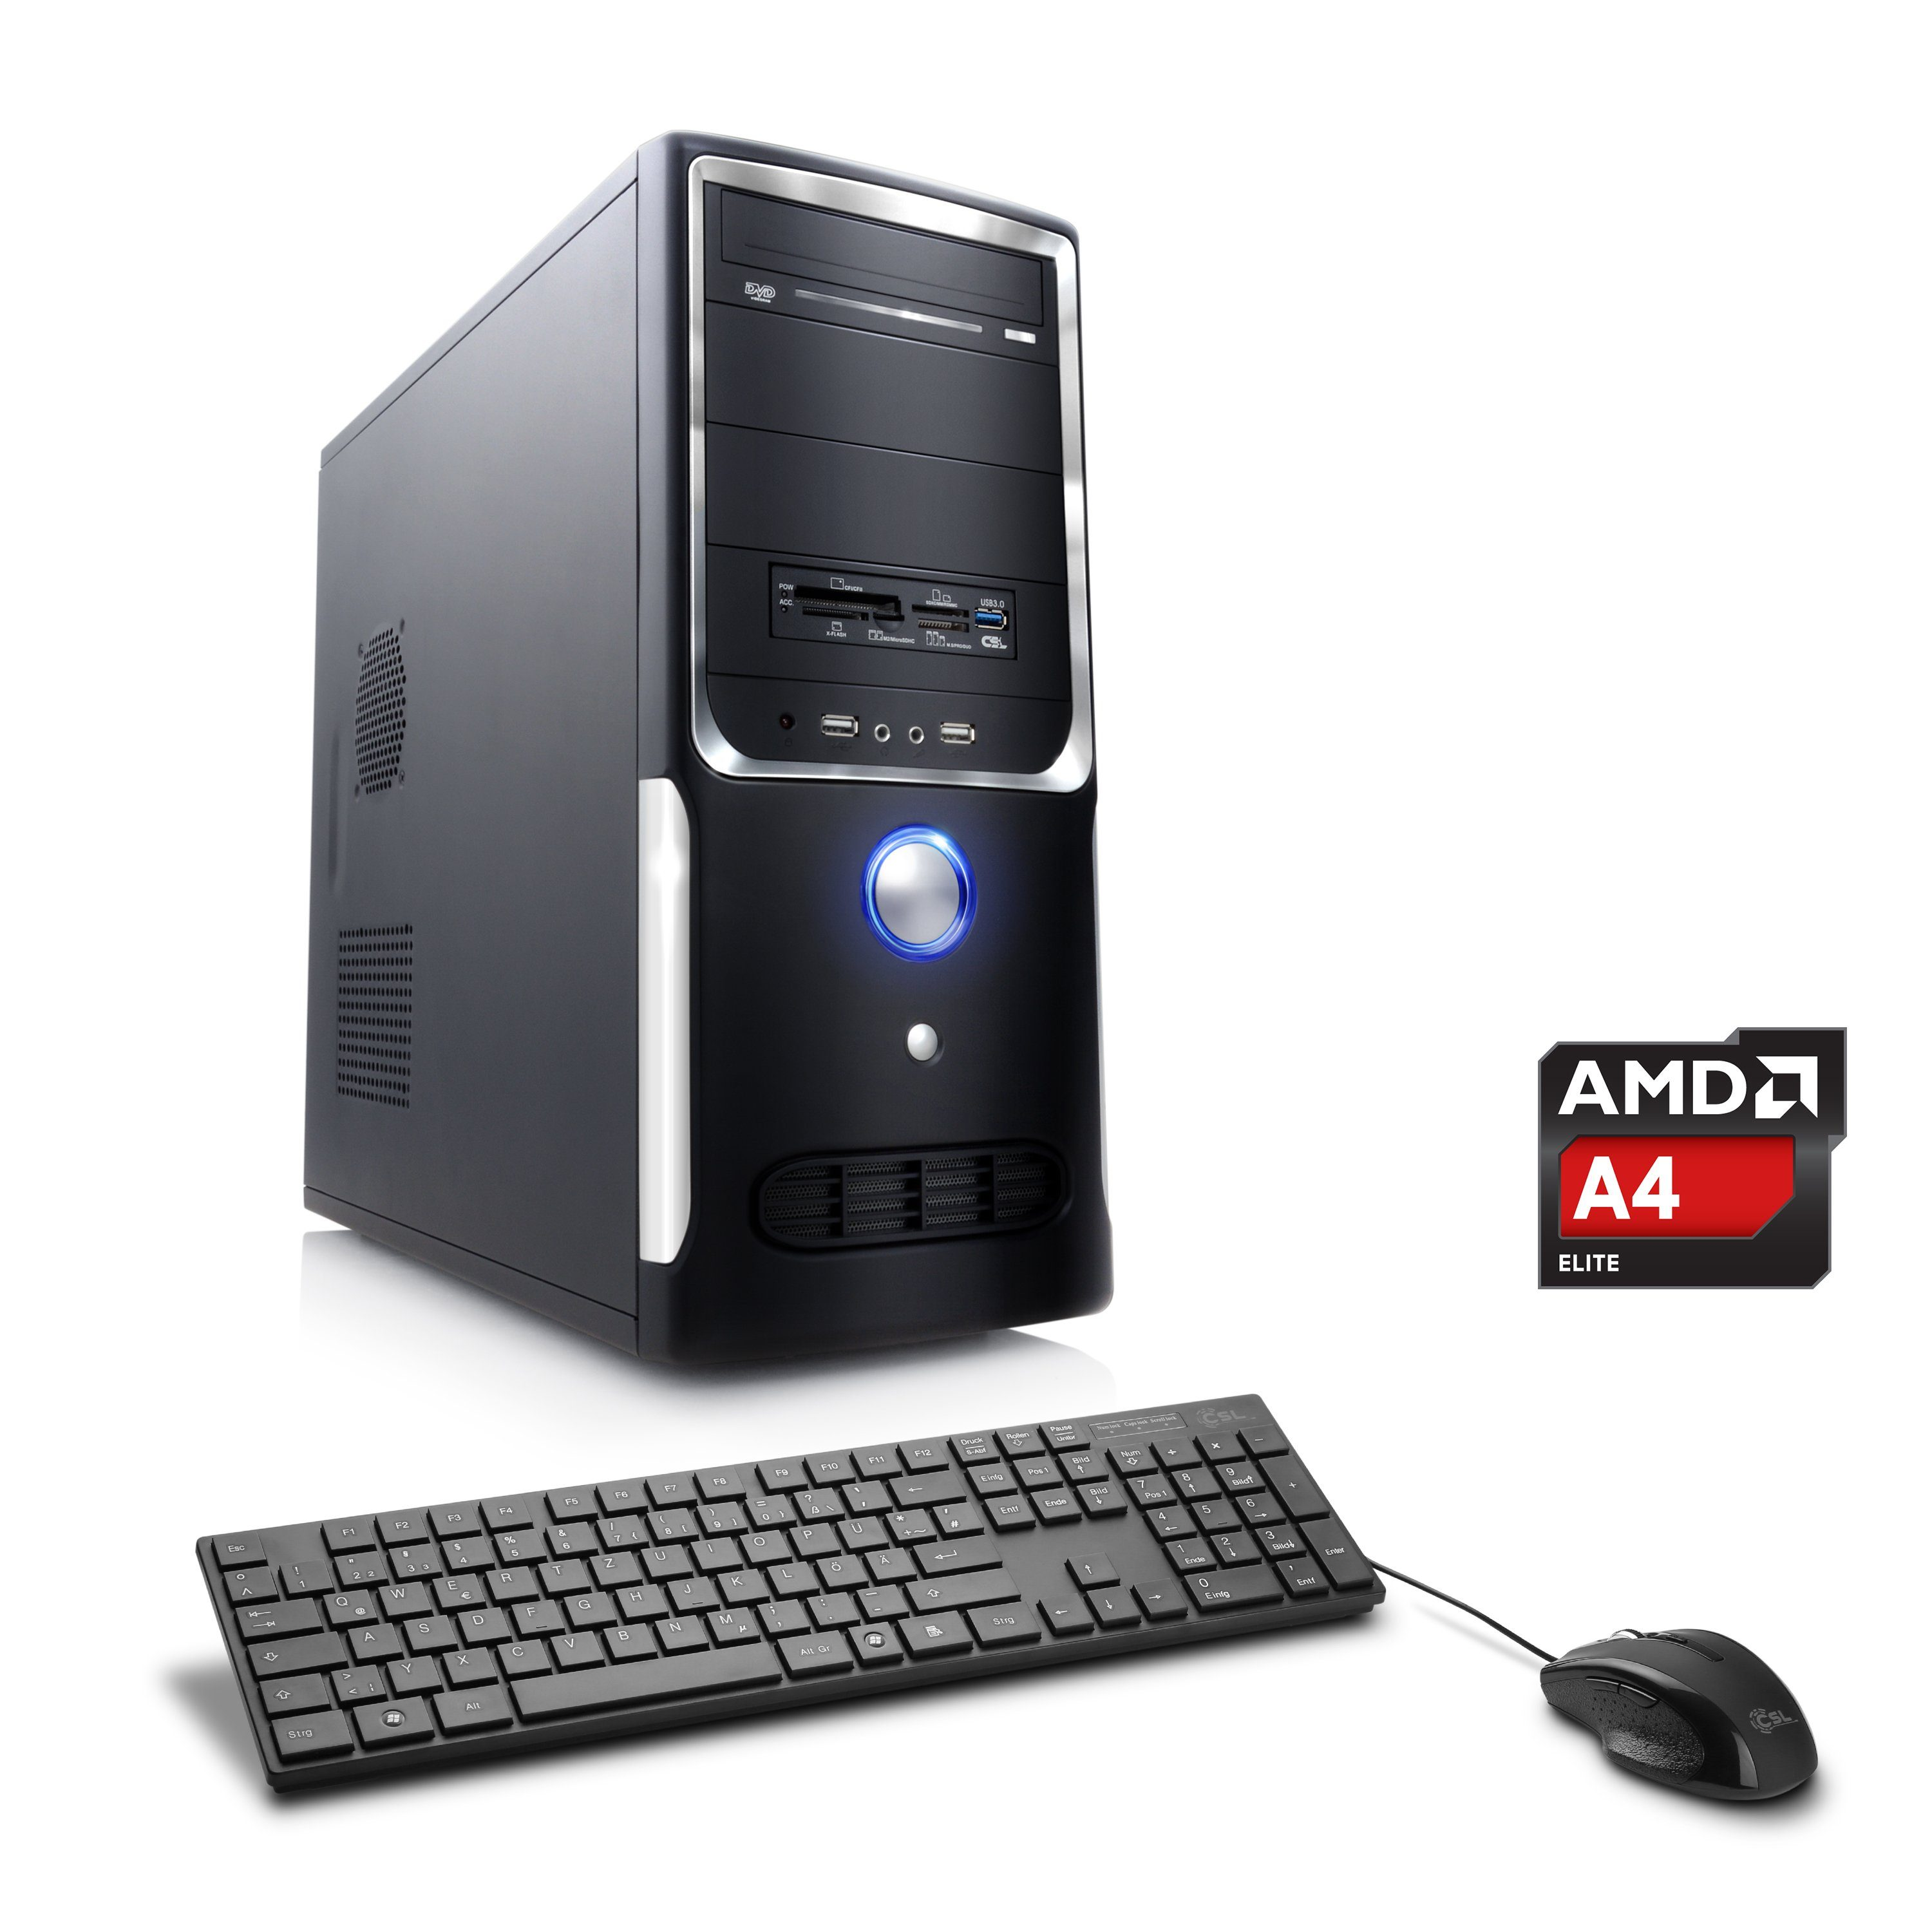 CSL Office PC | AMD A4-5300 | AMD Radeon HD 7480D | 8 GB RAM | WLAN »Sprint T2822 Windows 10 Home«